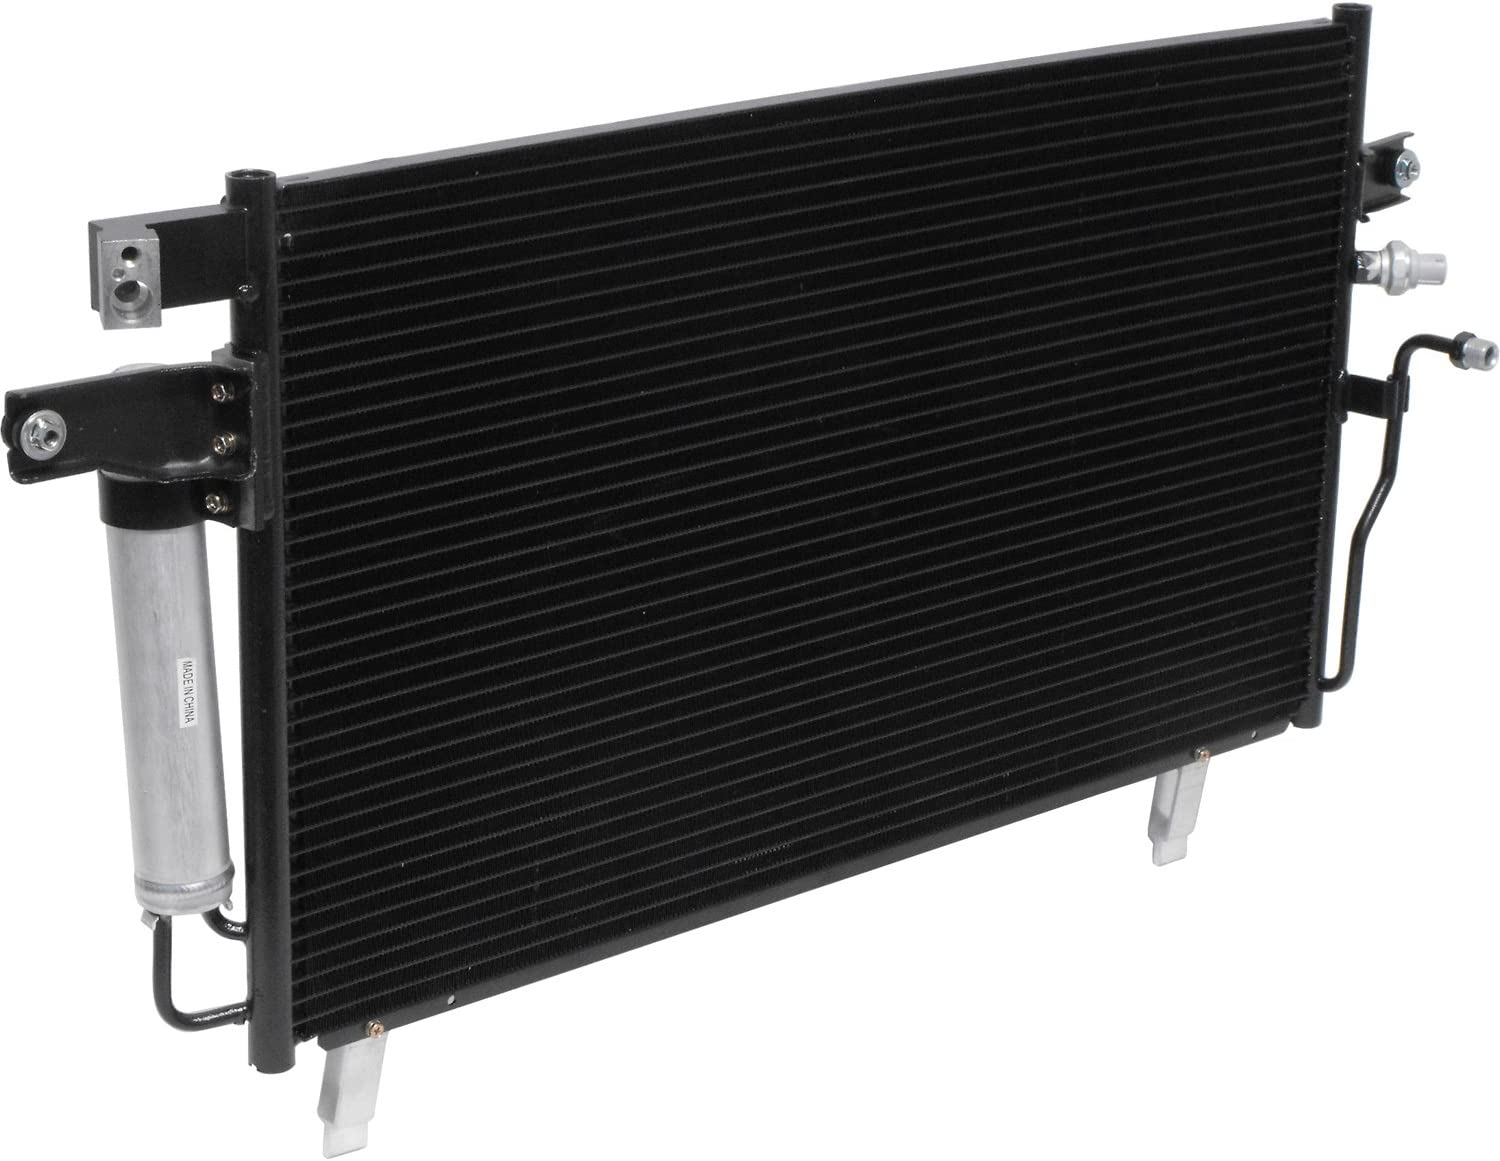 UAC CN Directly managed store Max 43% OFF 3109PFC C Condenser A